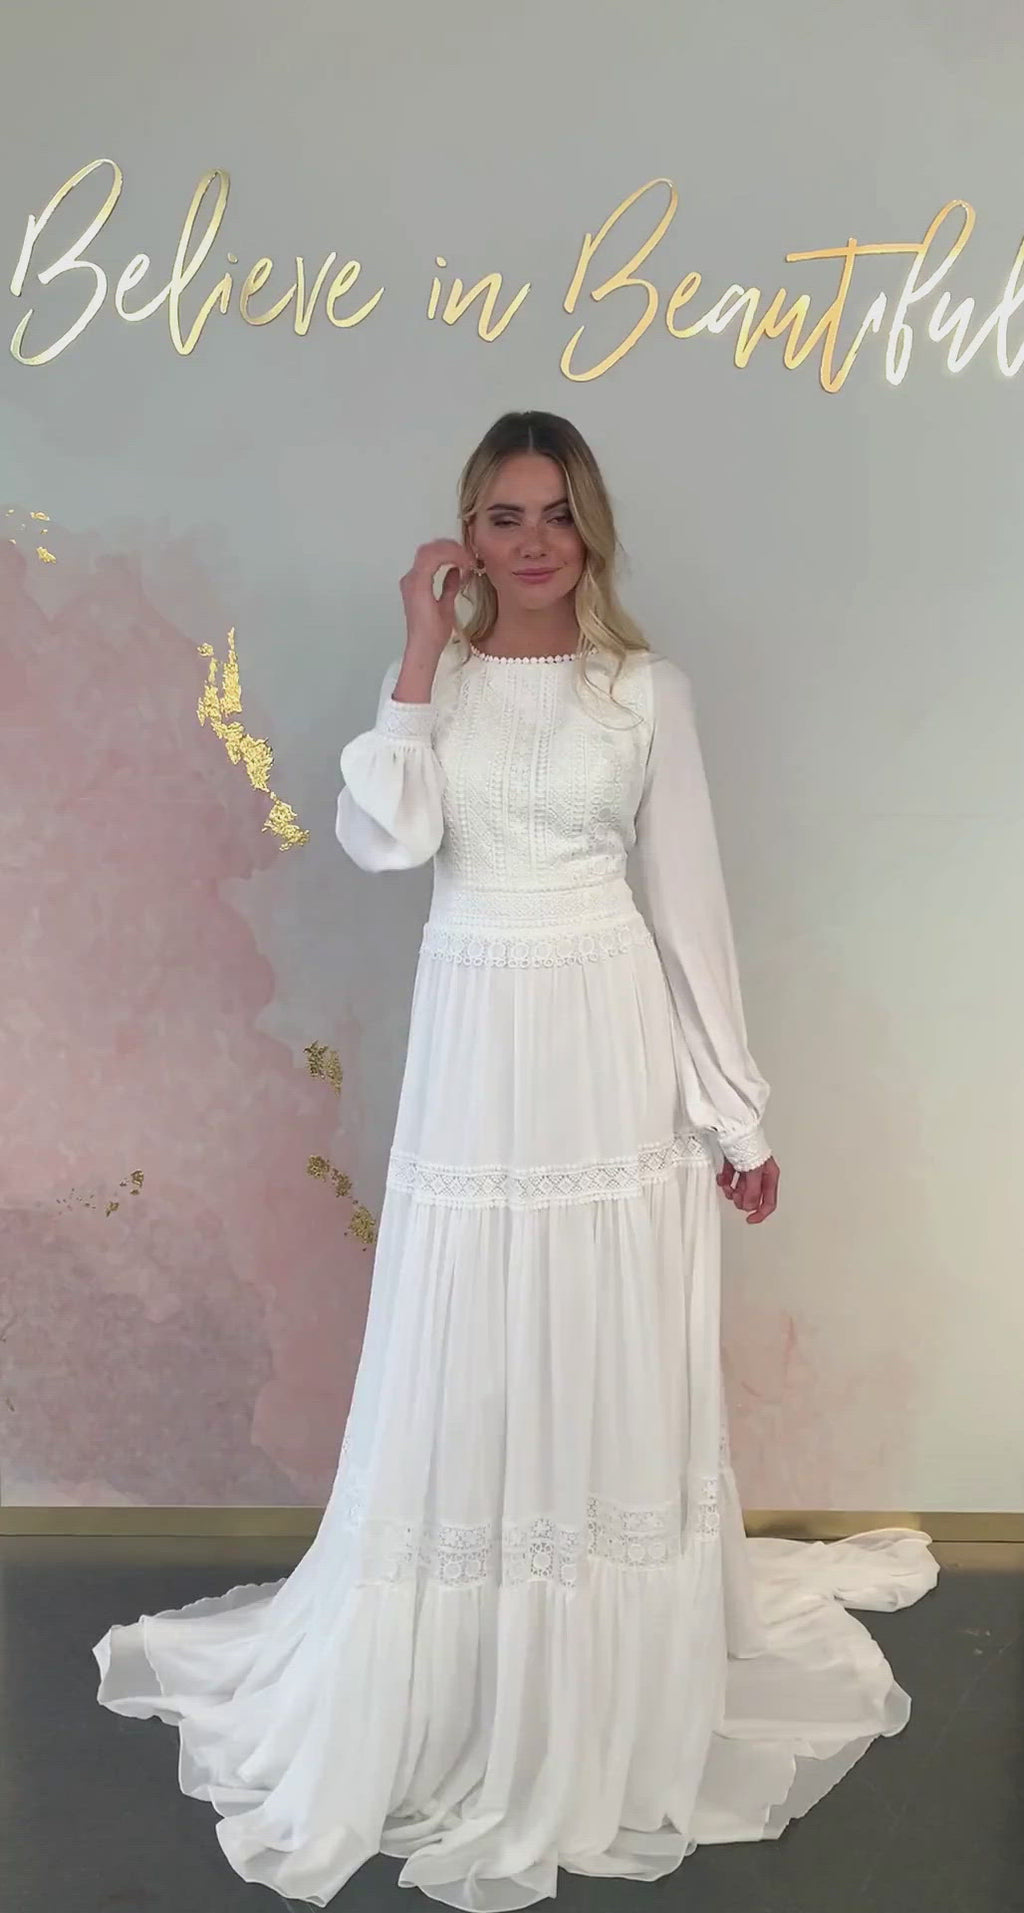 A video featuring our unique, boho Watson dress and its tiered lace skirt, and chiffon bishop sleeves.